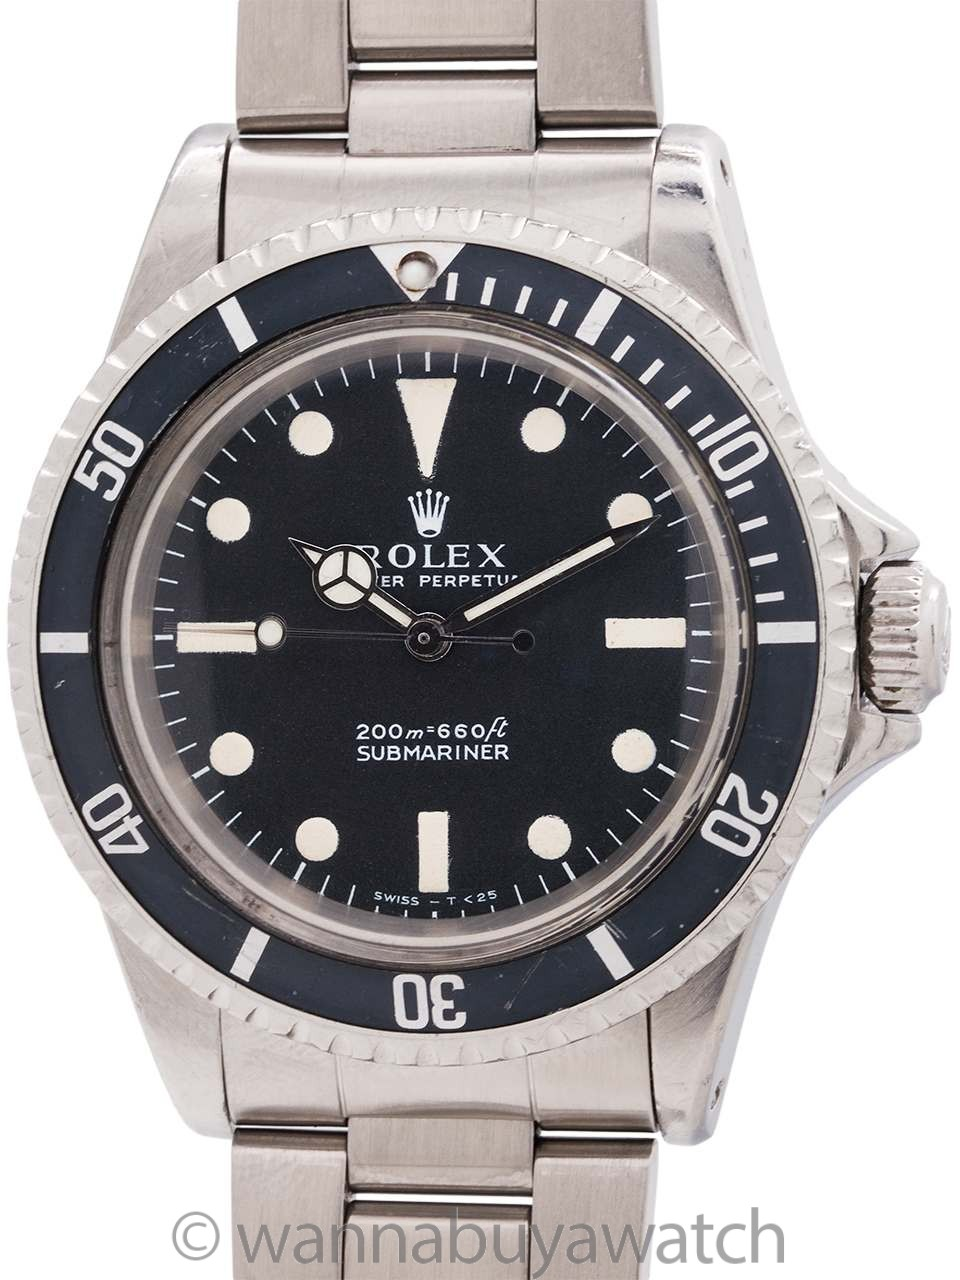 Rolex Submariner ref 5513 Meters First circa 1968